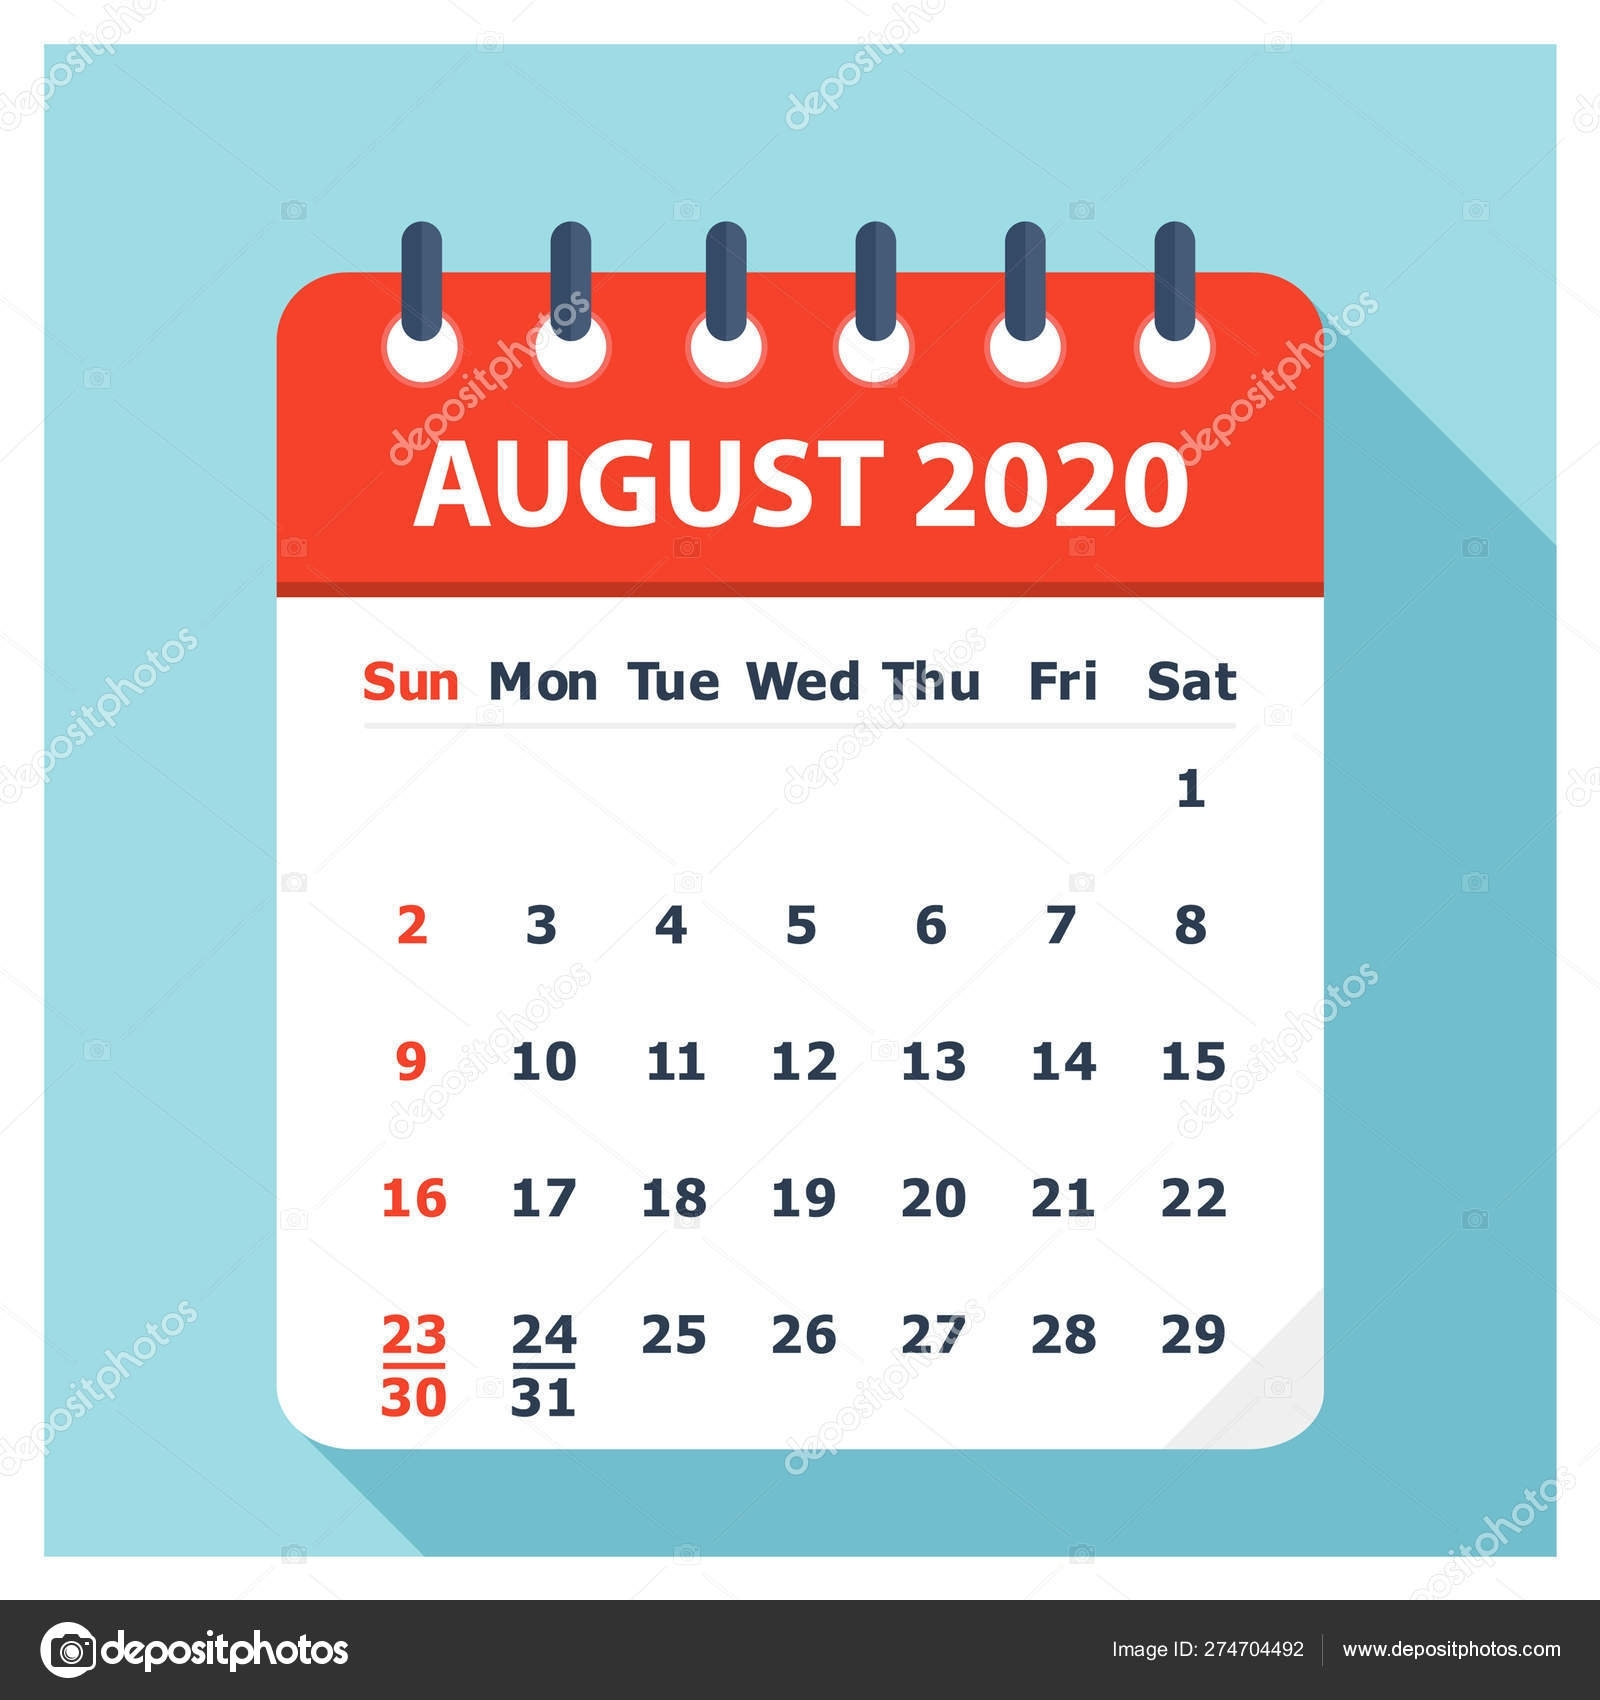 August 2020 - Calendar Icon - Calendar Design Template